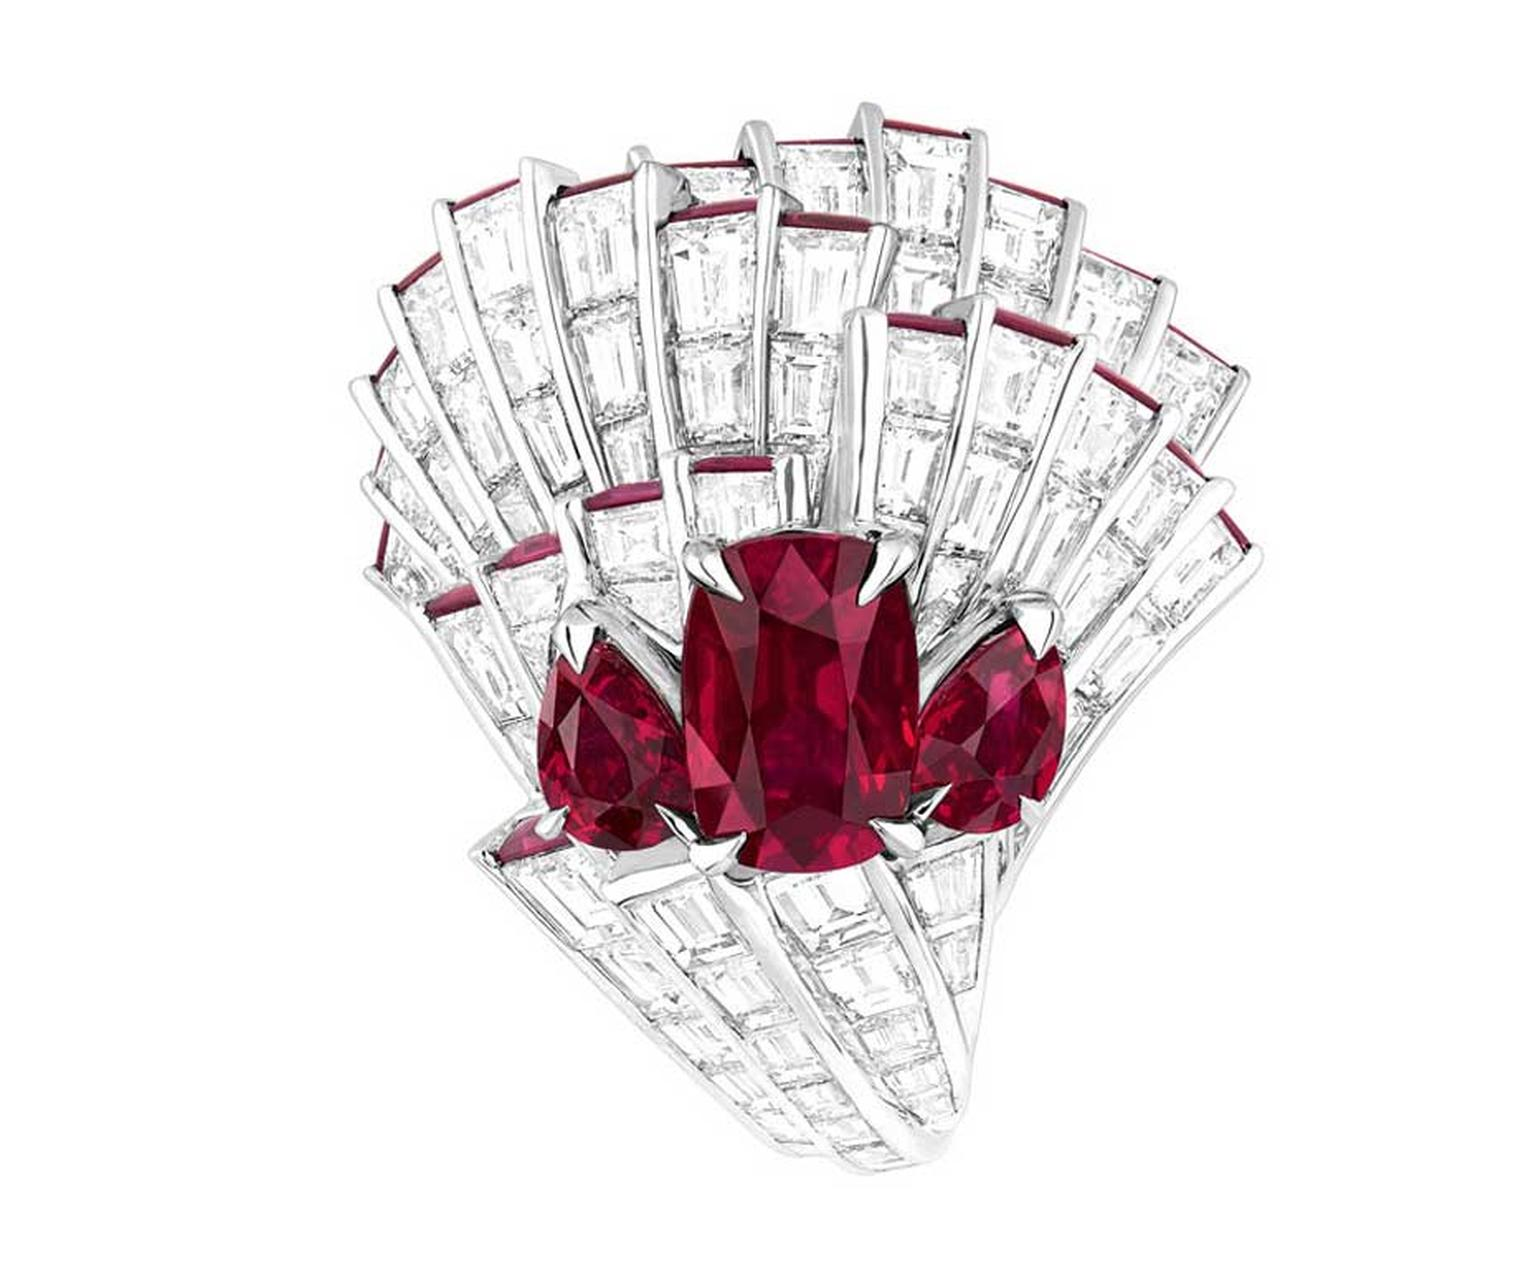 Dior Corolle Soir ruby ring from the Archi Dior high jewellery collection.